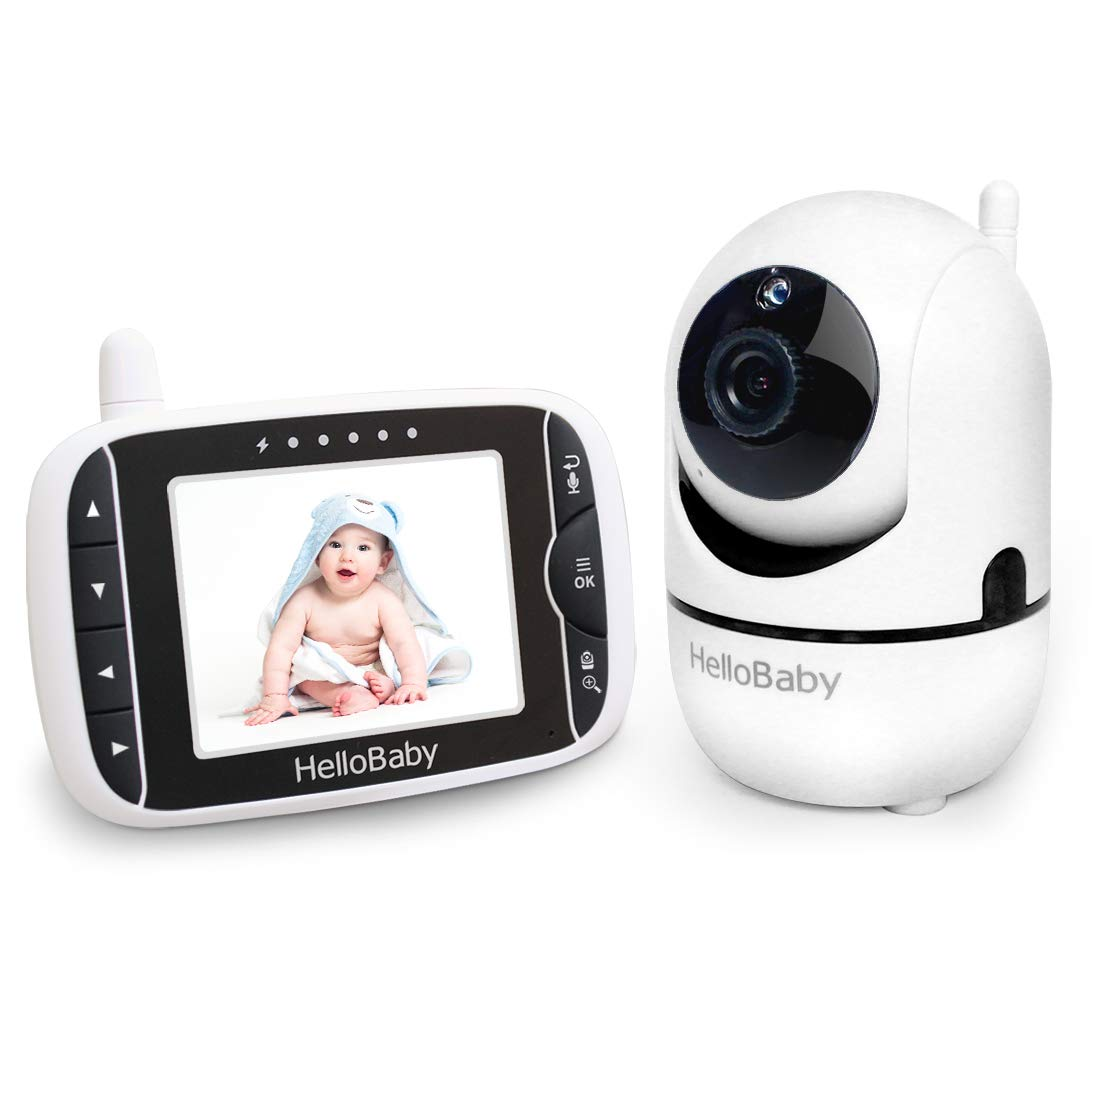 HelloBaby Video Baby Monitor with Remote Camera Pan-Tilt-Zoom, 3.2 Color LCD Screen, Infrared Night Vision, Temperature Display, Lullaby, Two Way Audio, with Wall Mount Kit